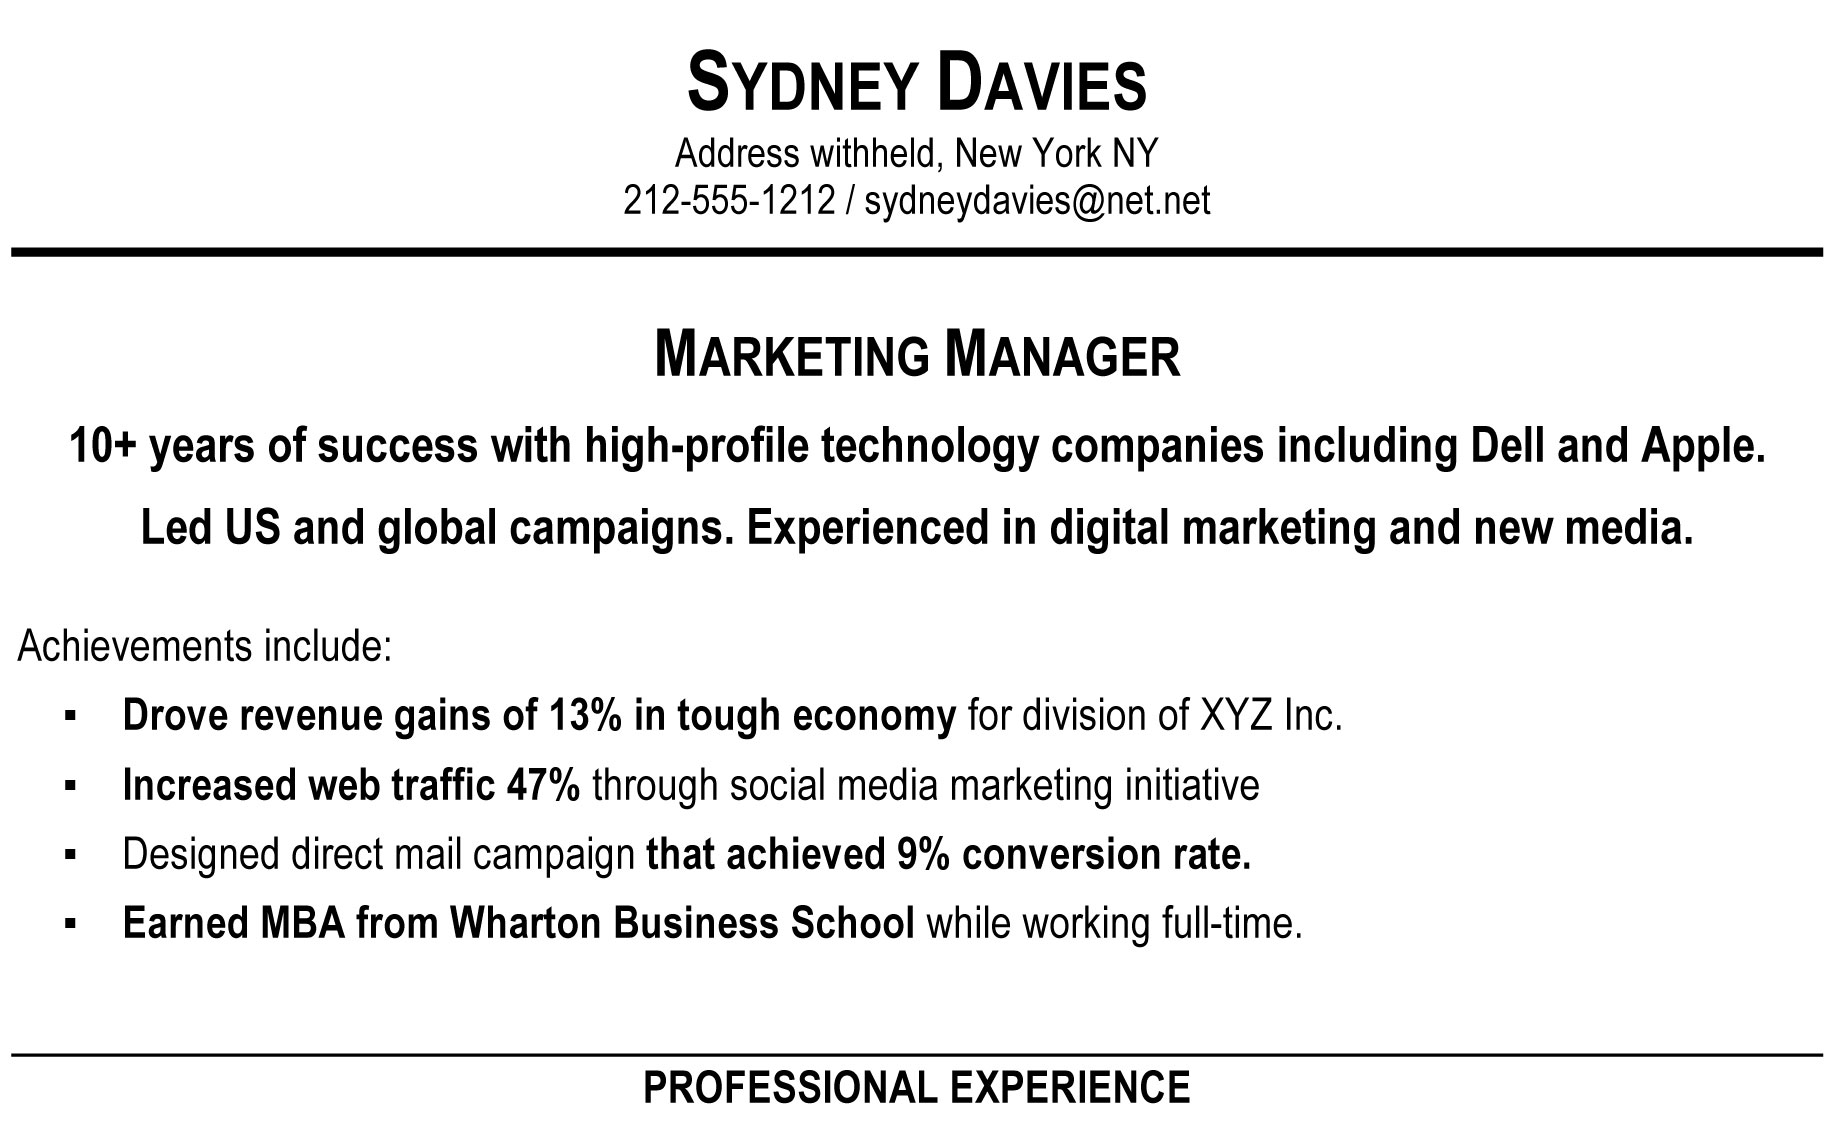 I'm Seventeen - have had little retail experience - how can I write a GREAT resume?